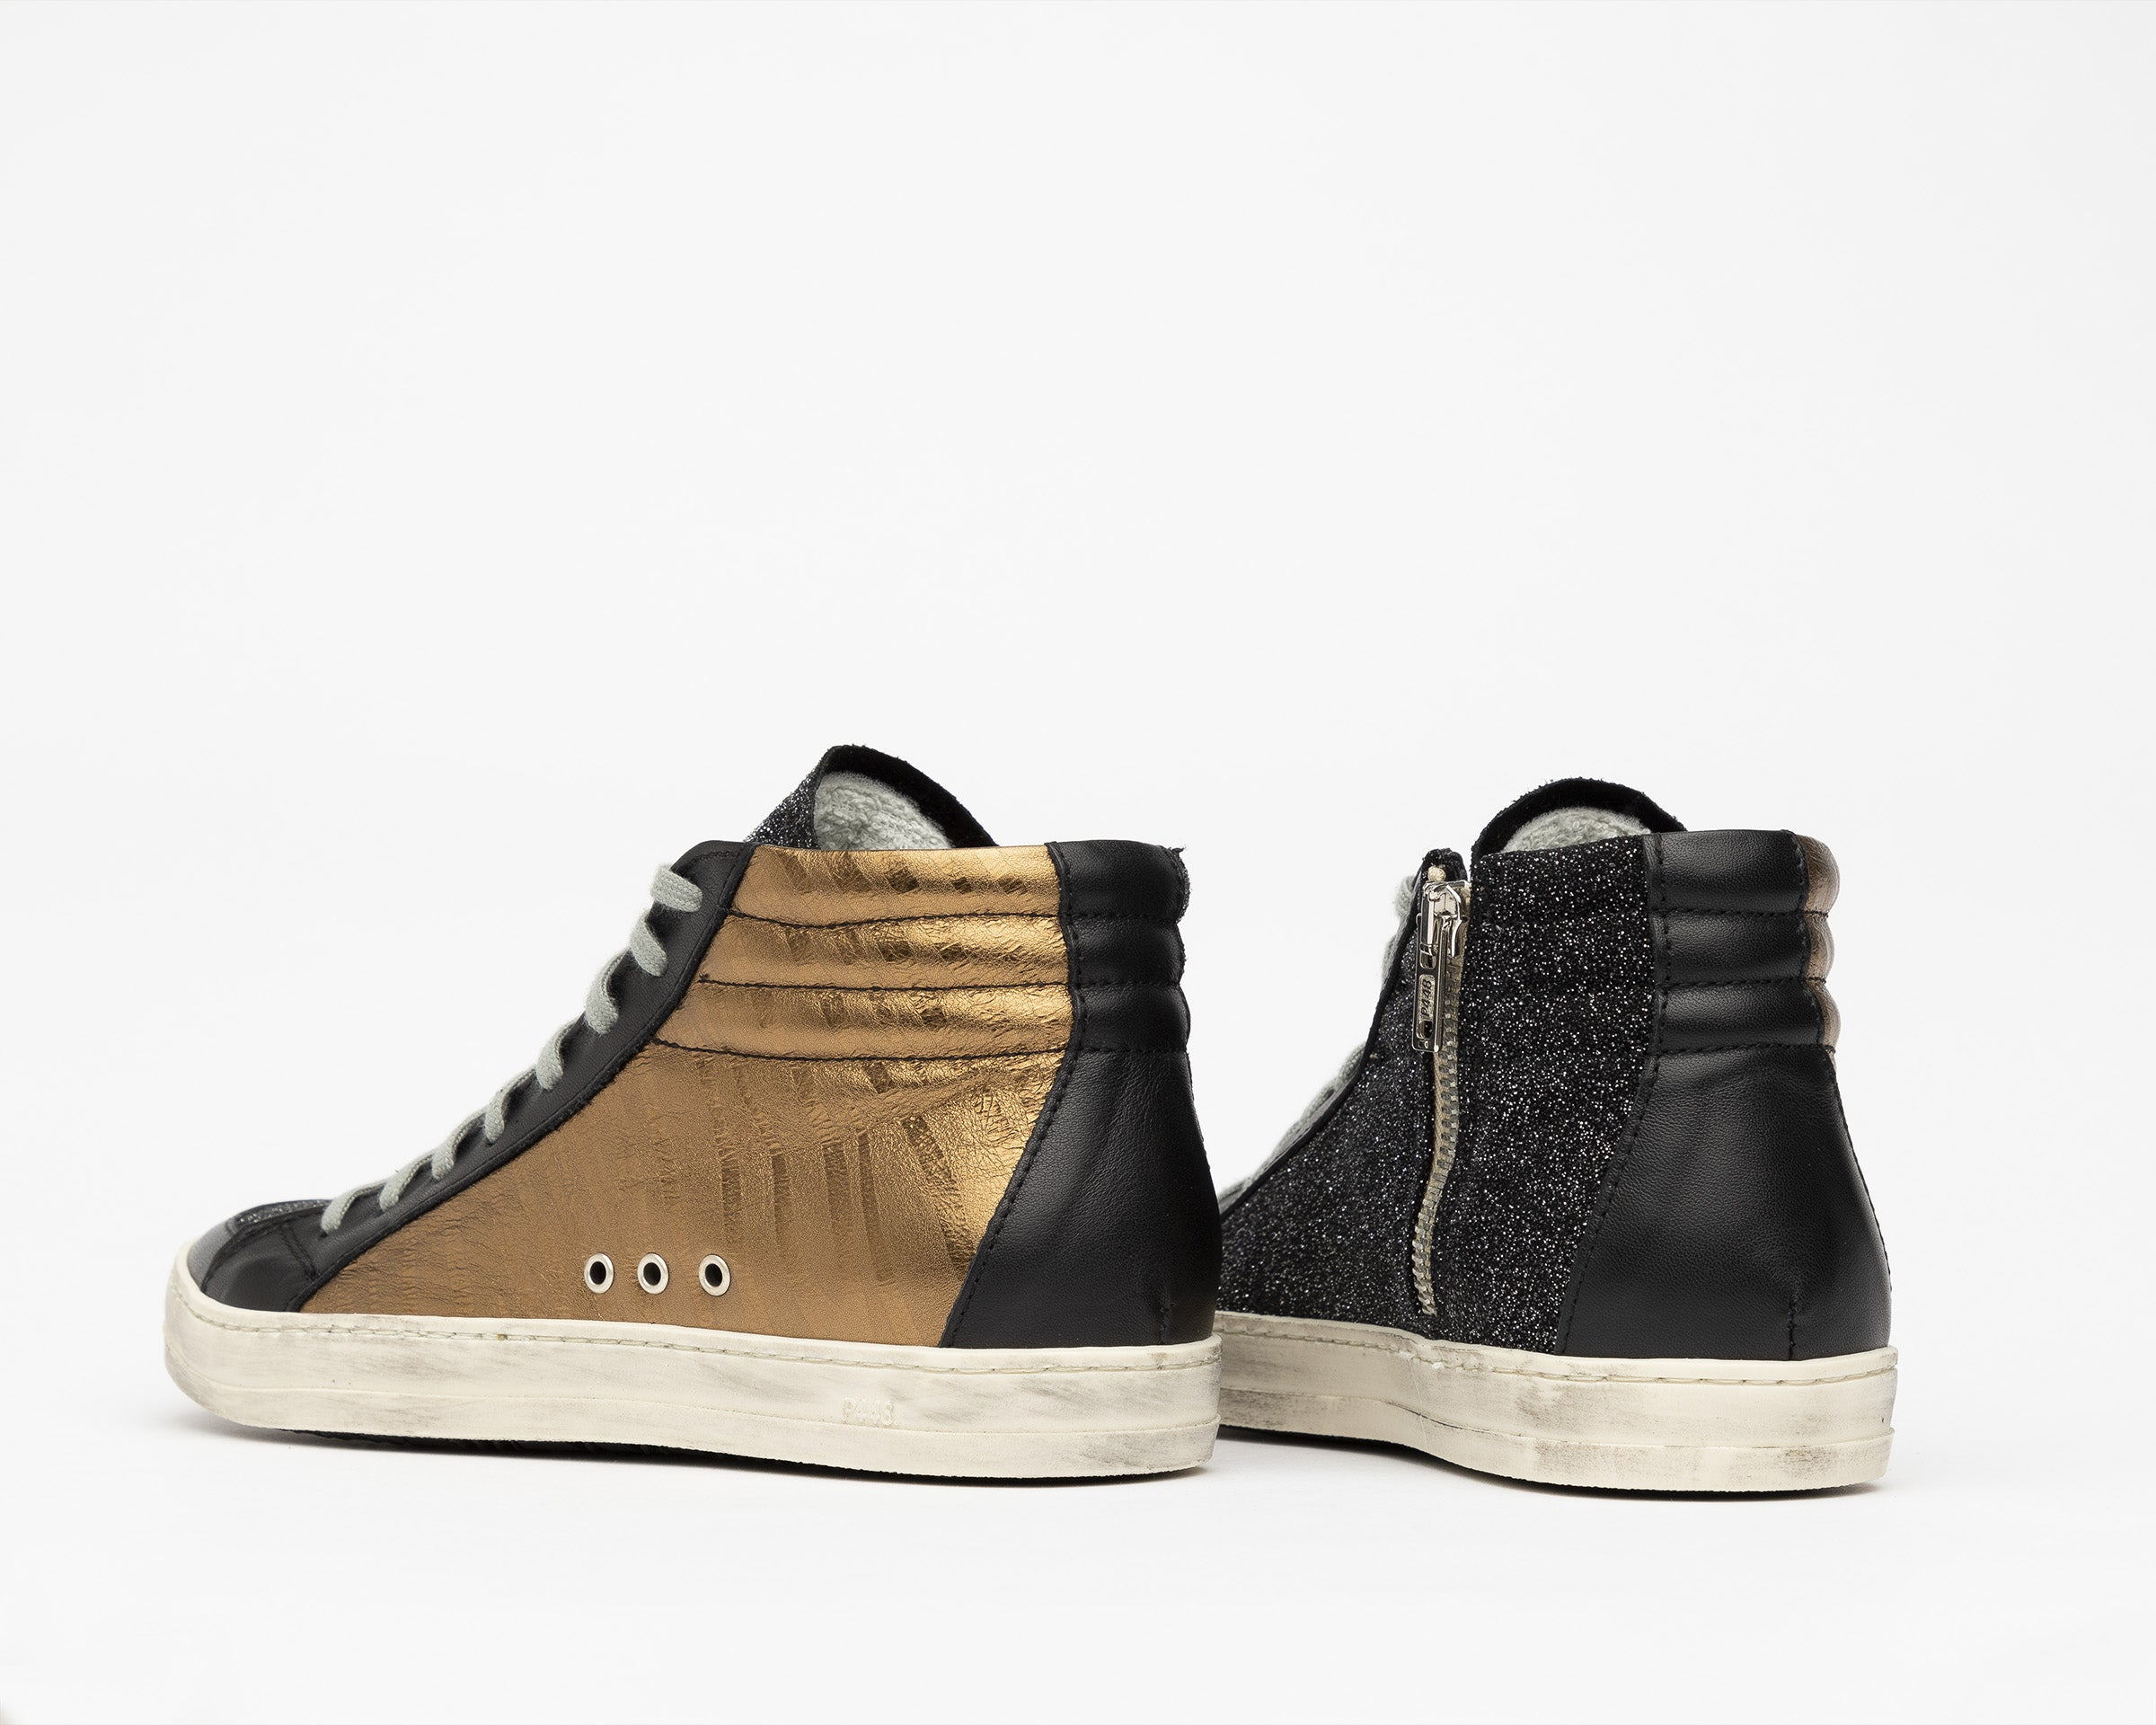 SkateBS High-Top Sneaker in Sahara - Detail 2